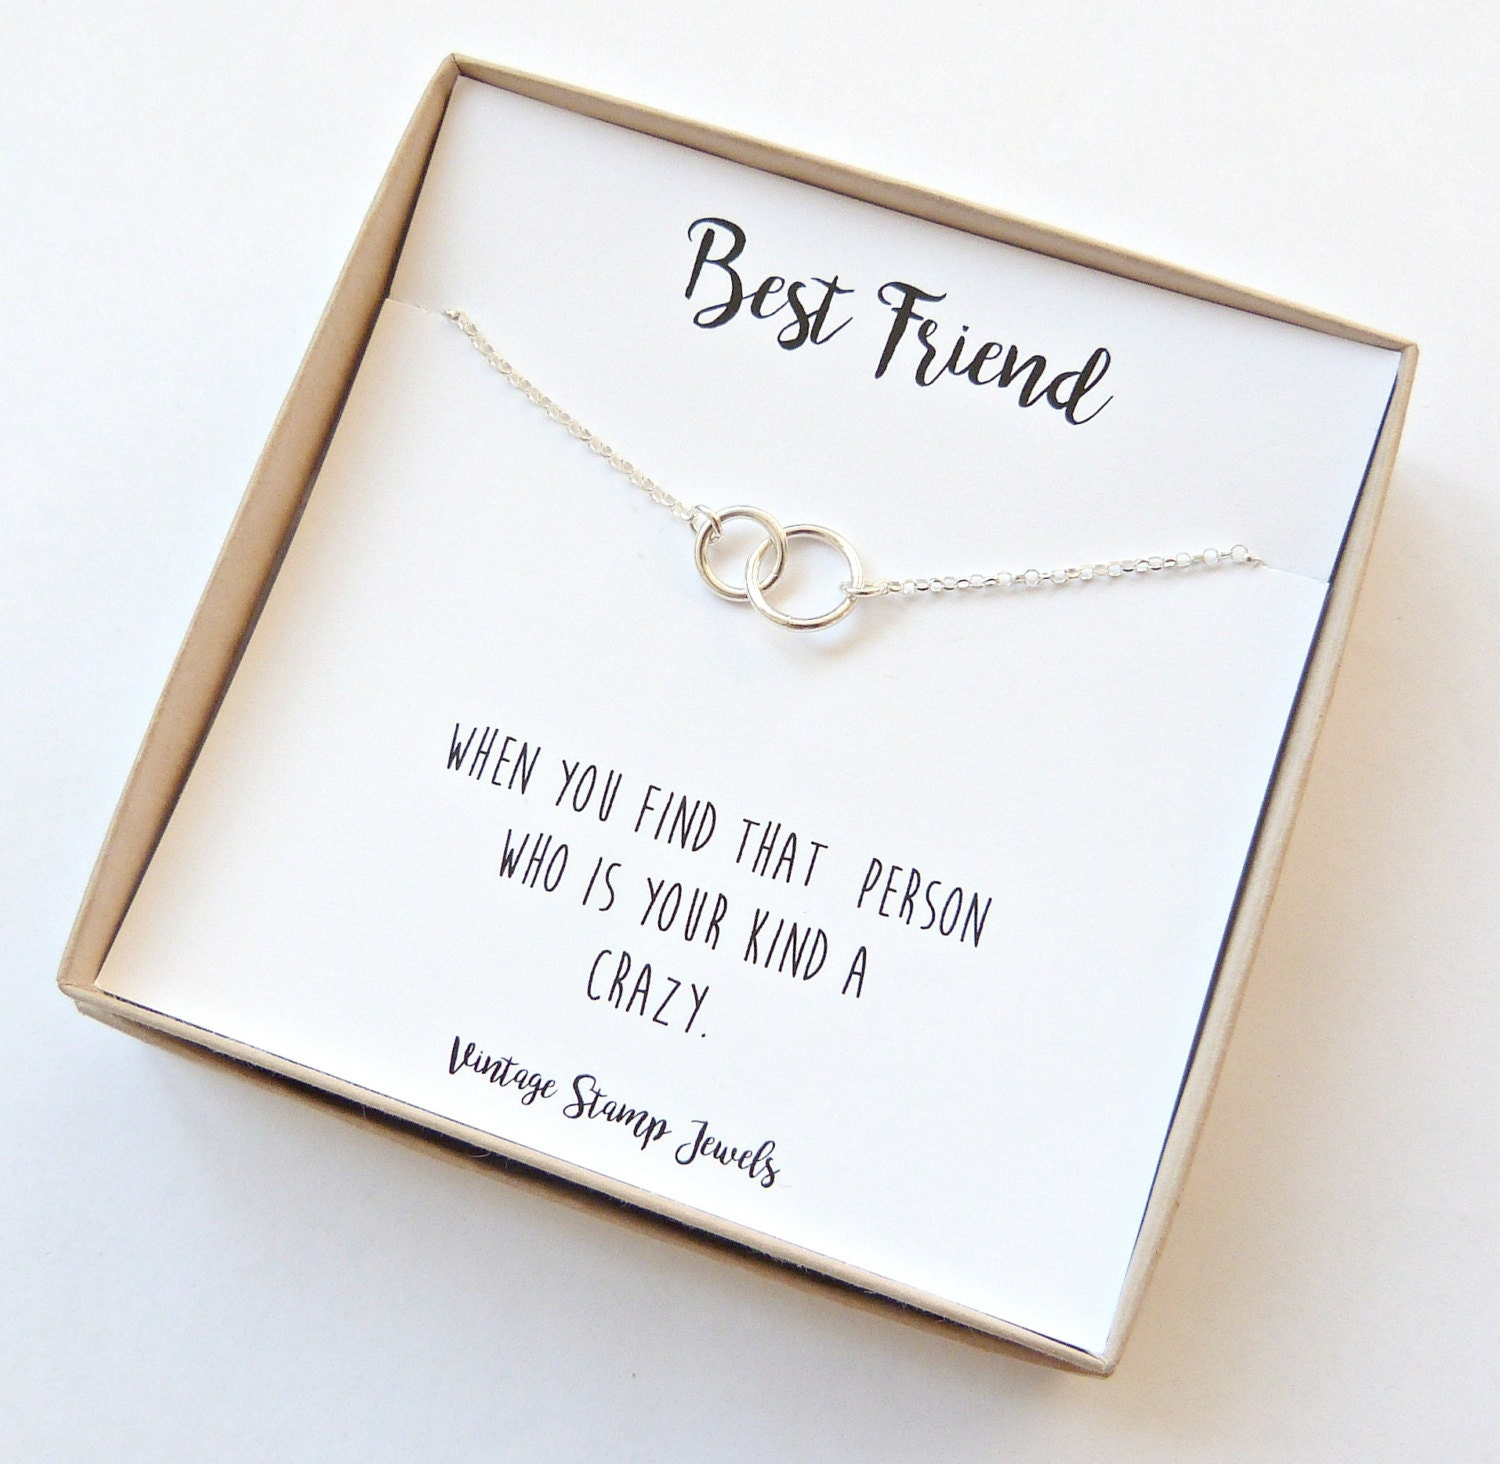 Eternity Necklace Gold Necklace Friend christmas Gift Box